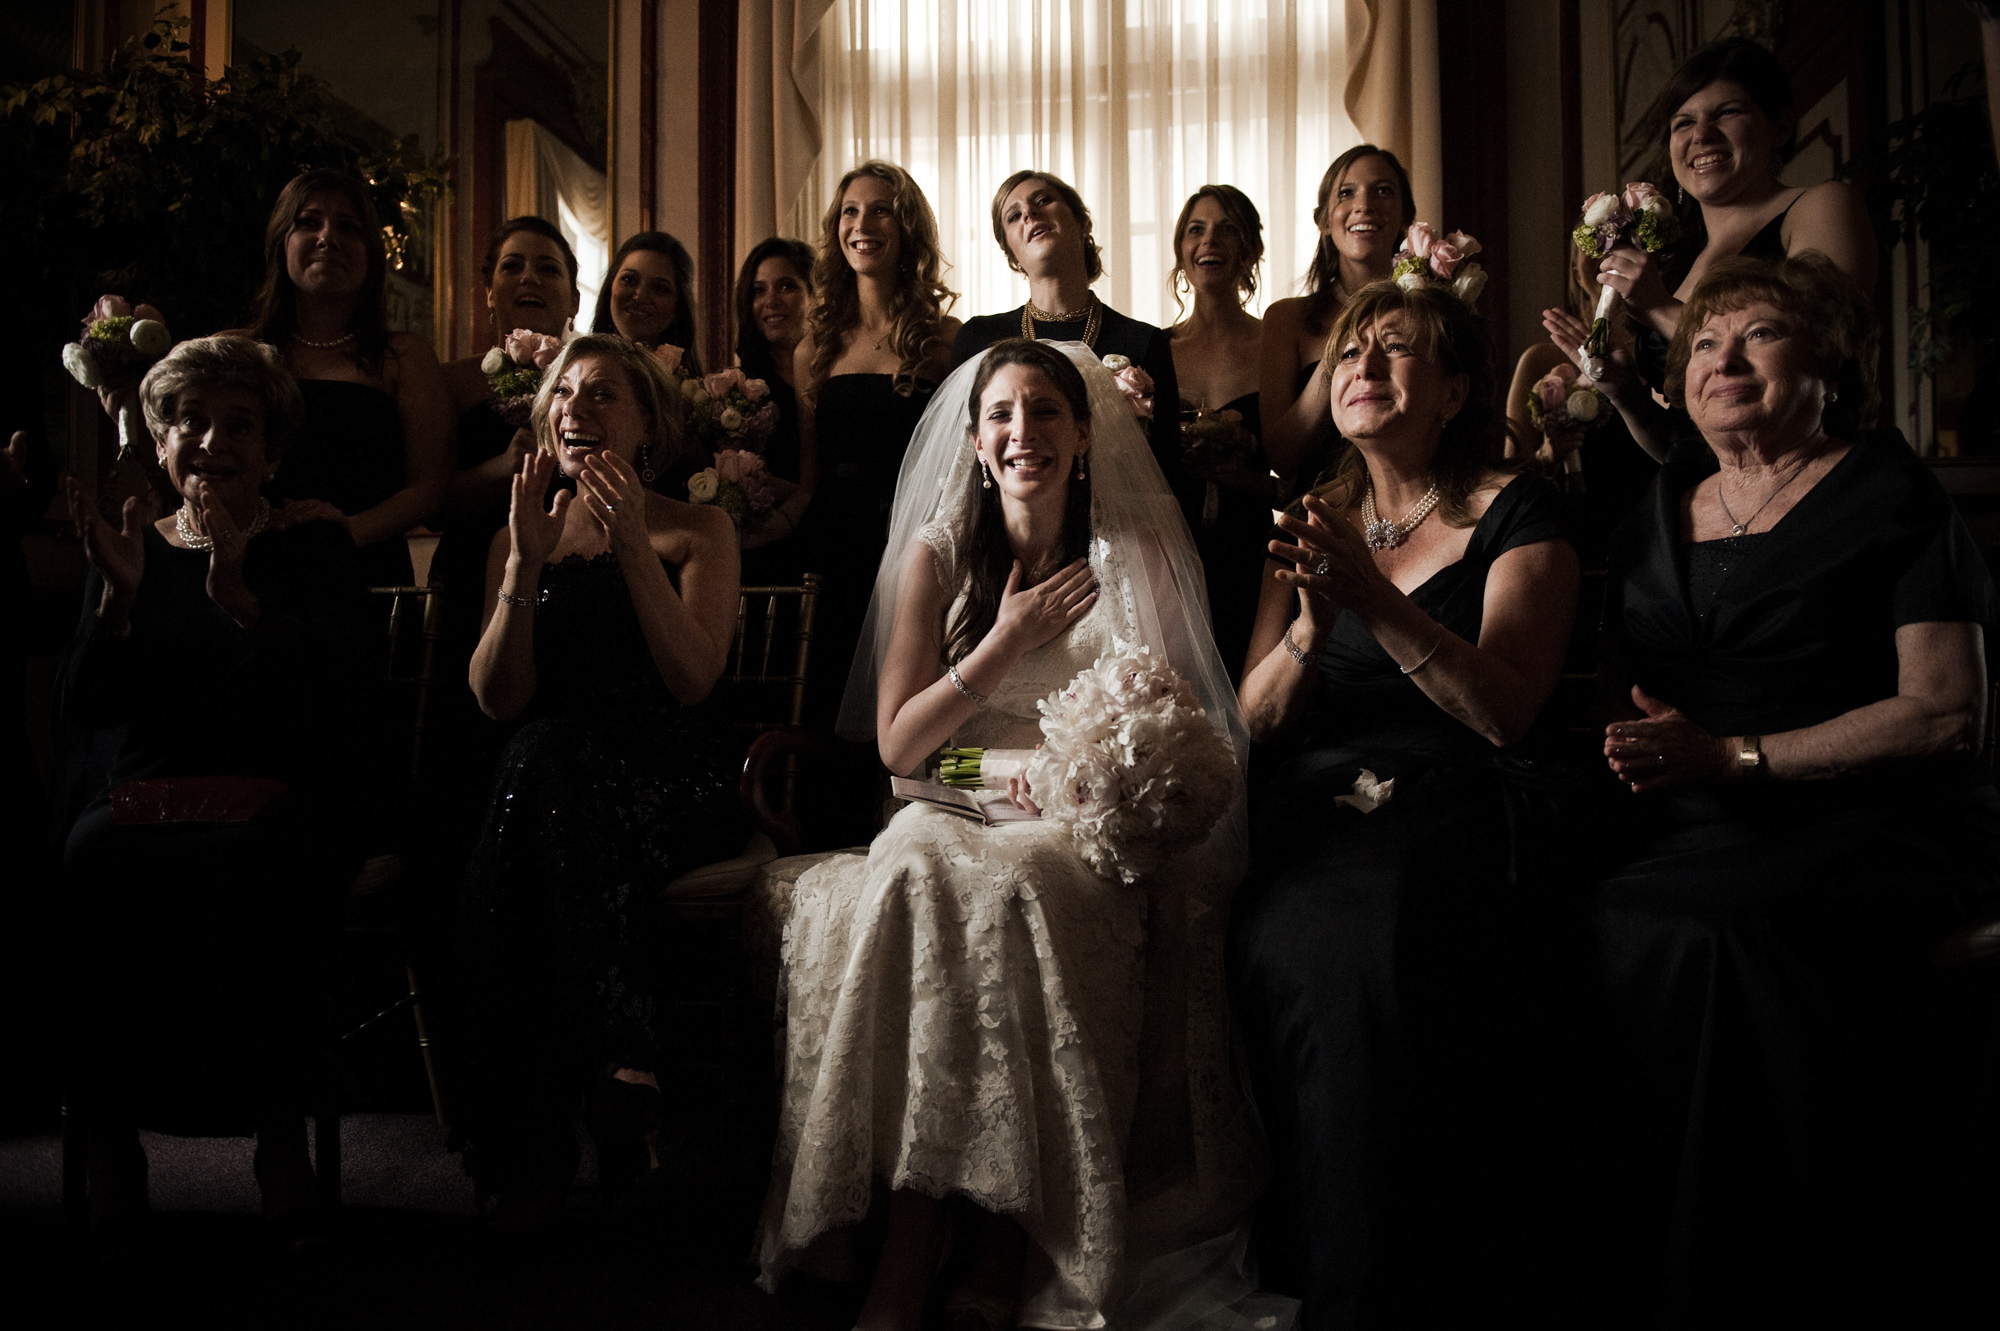 Emotional bride surrounded by women photo by Cliff Mautner